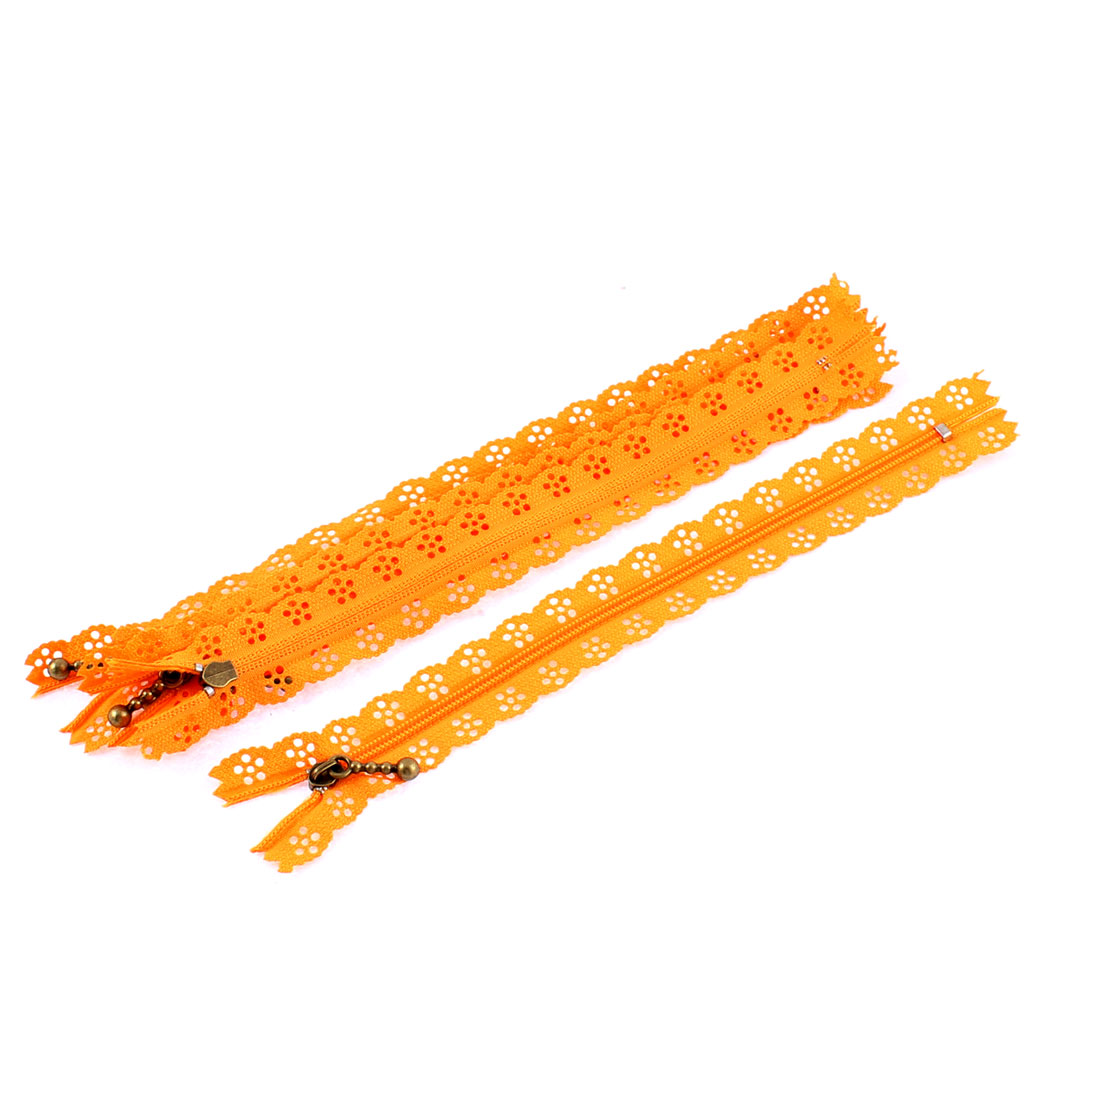 Nylon Coil Zippers Lace Edge Tailor Bag Clothing DIY Craft Orange 20cm 5 Pcs